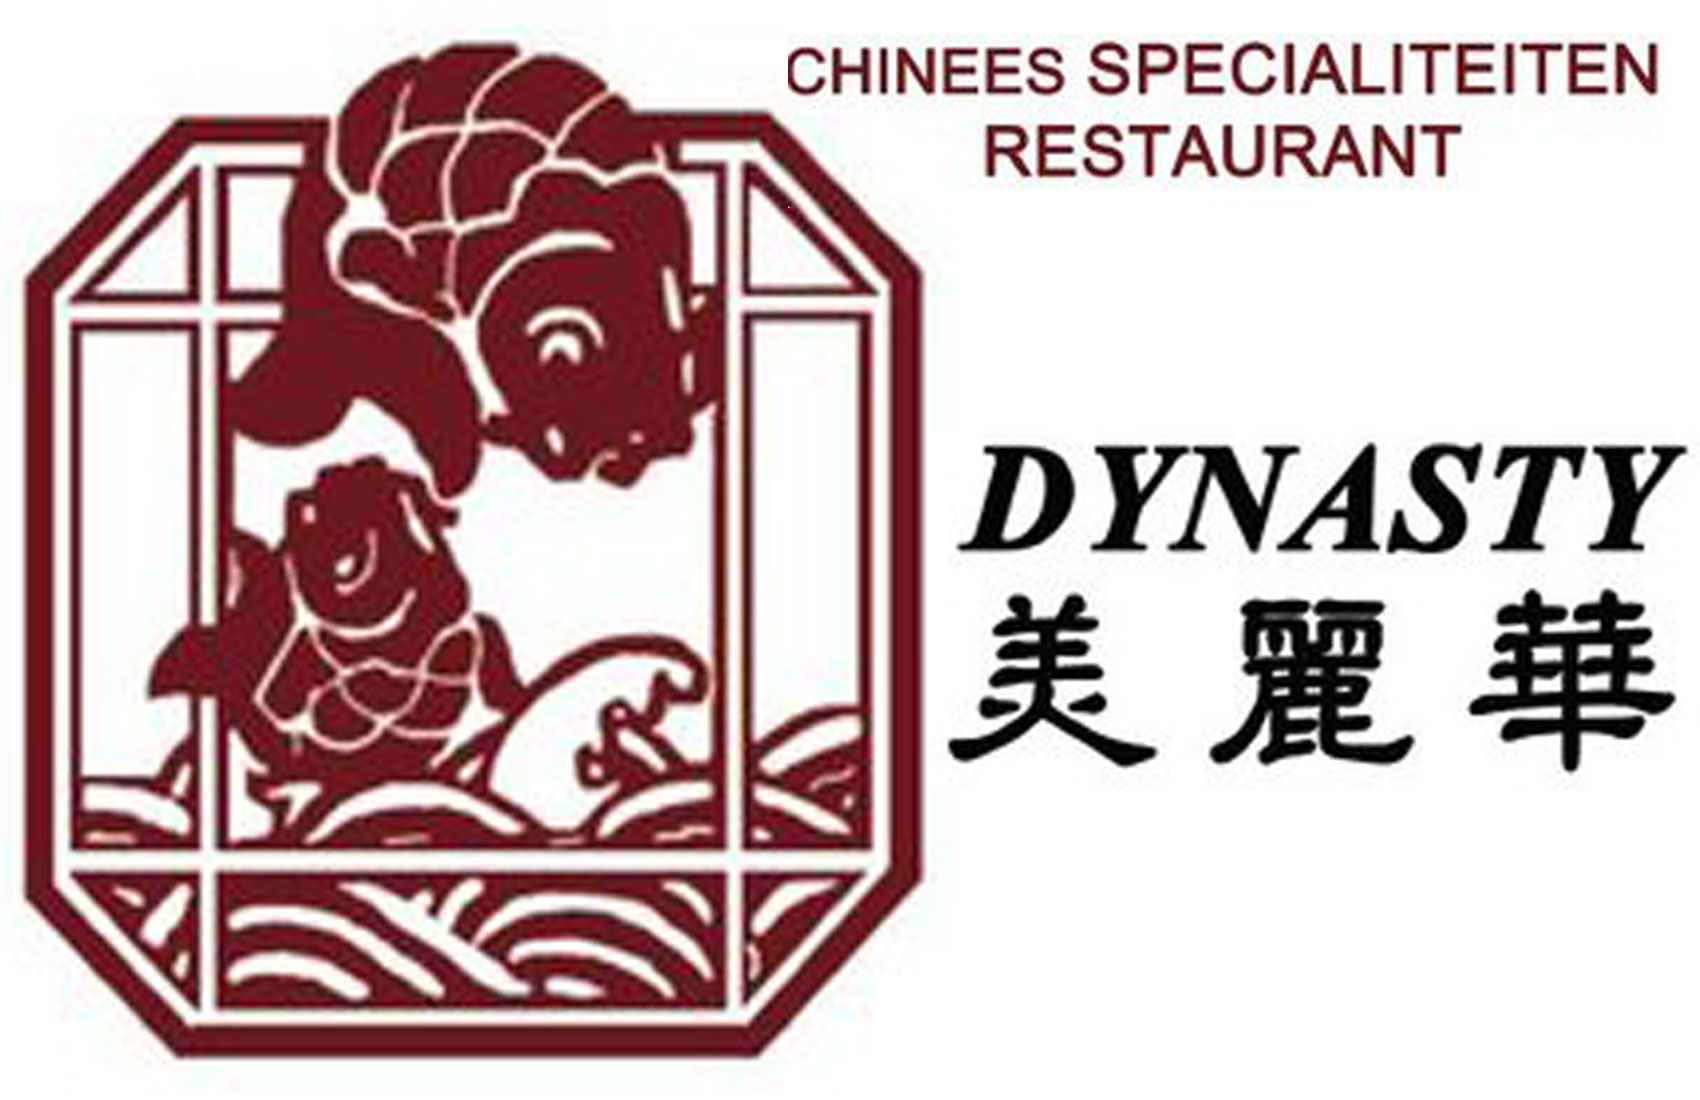 Dynasty Chinees Restaurant